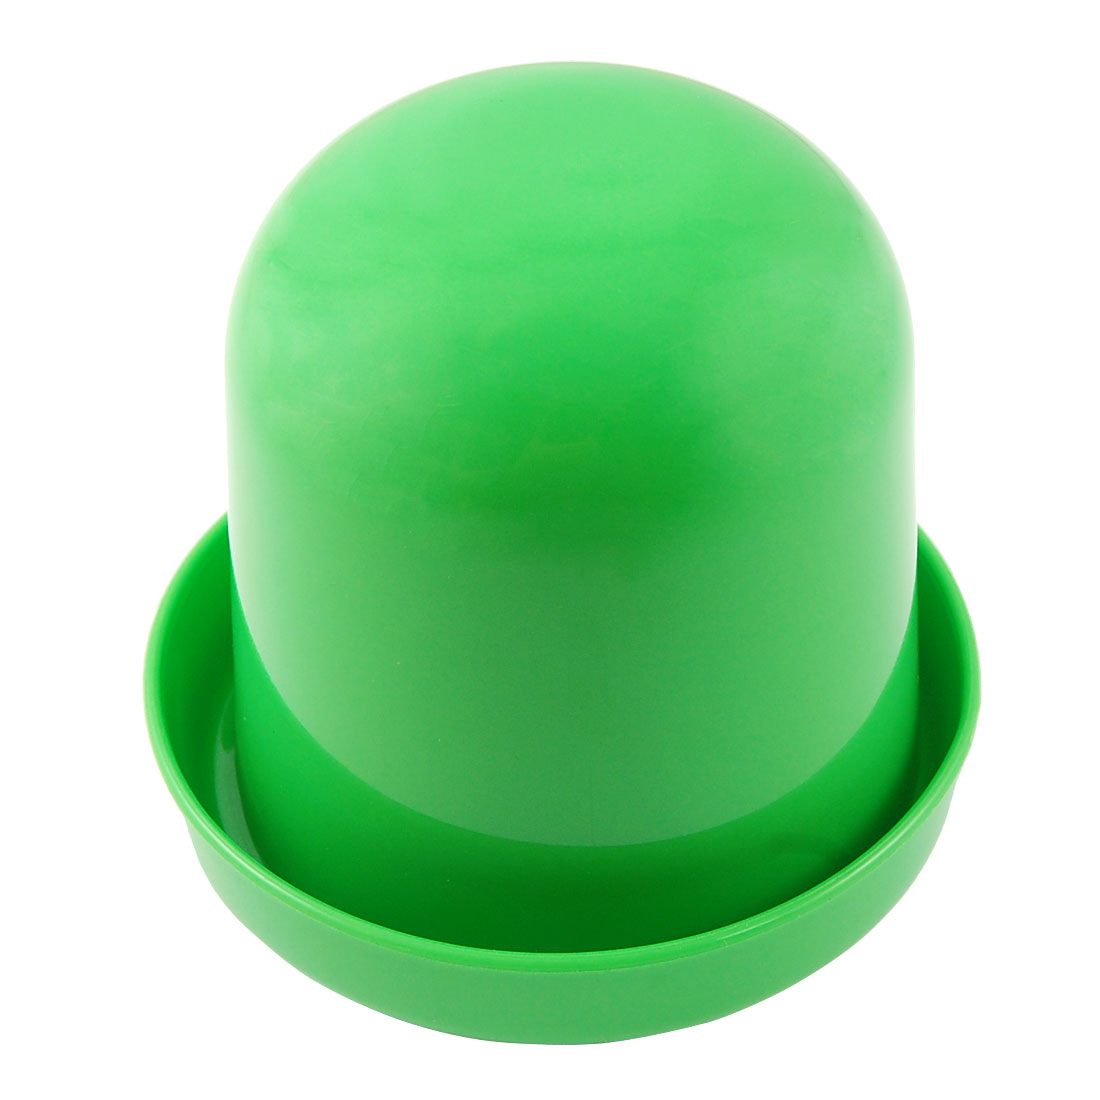 Bar Party Game Toy Green Plastic Dice Cup Shaker Holder Tray